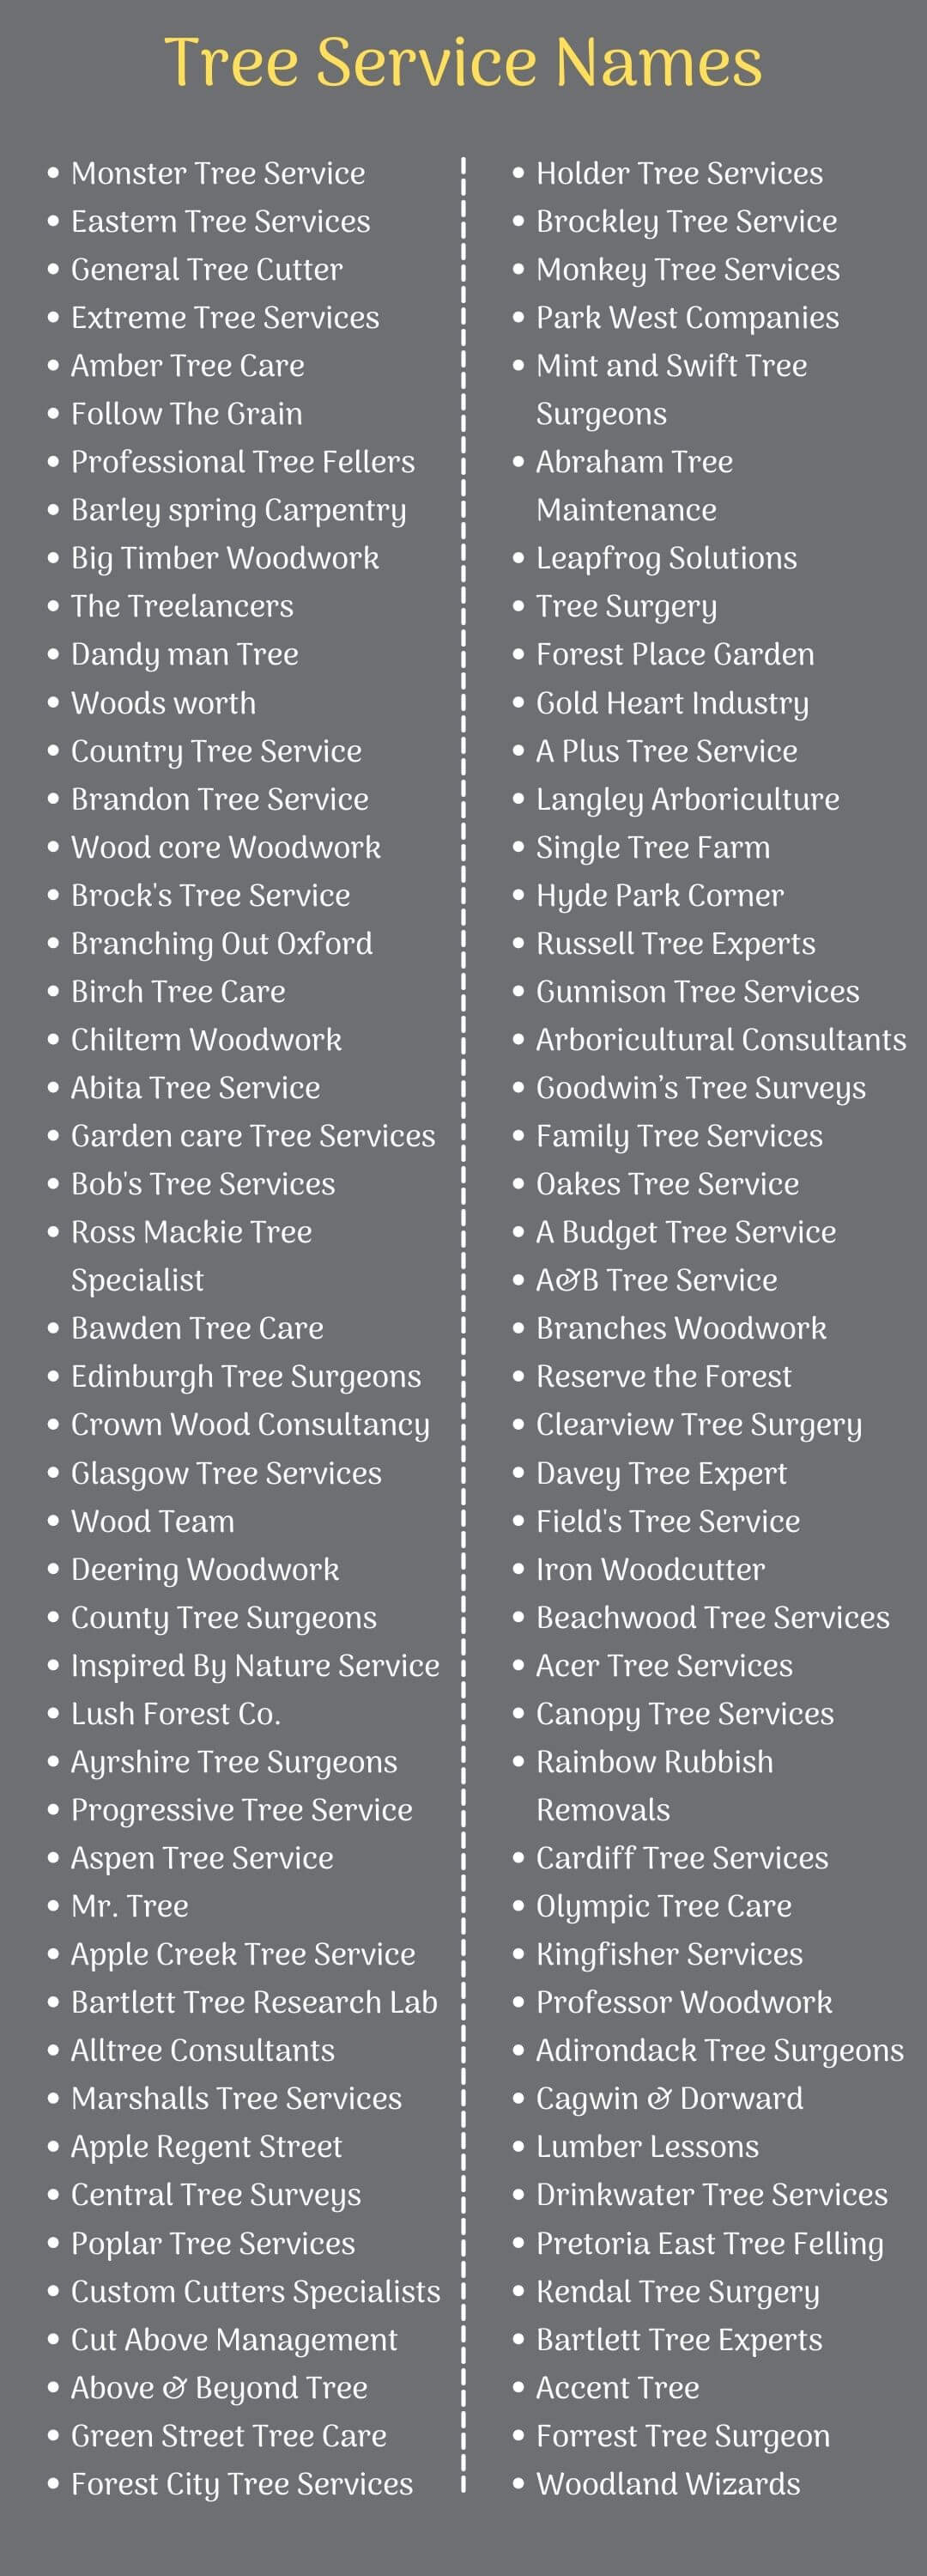 Tree Service Names Infographic